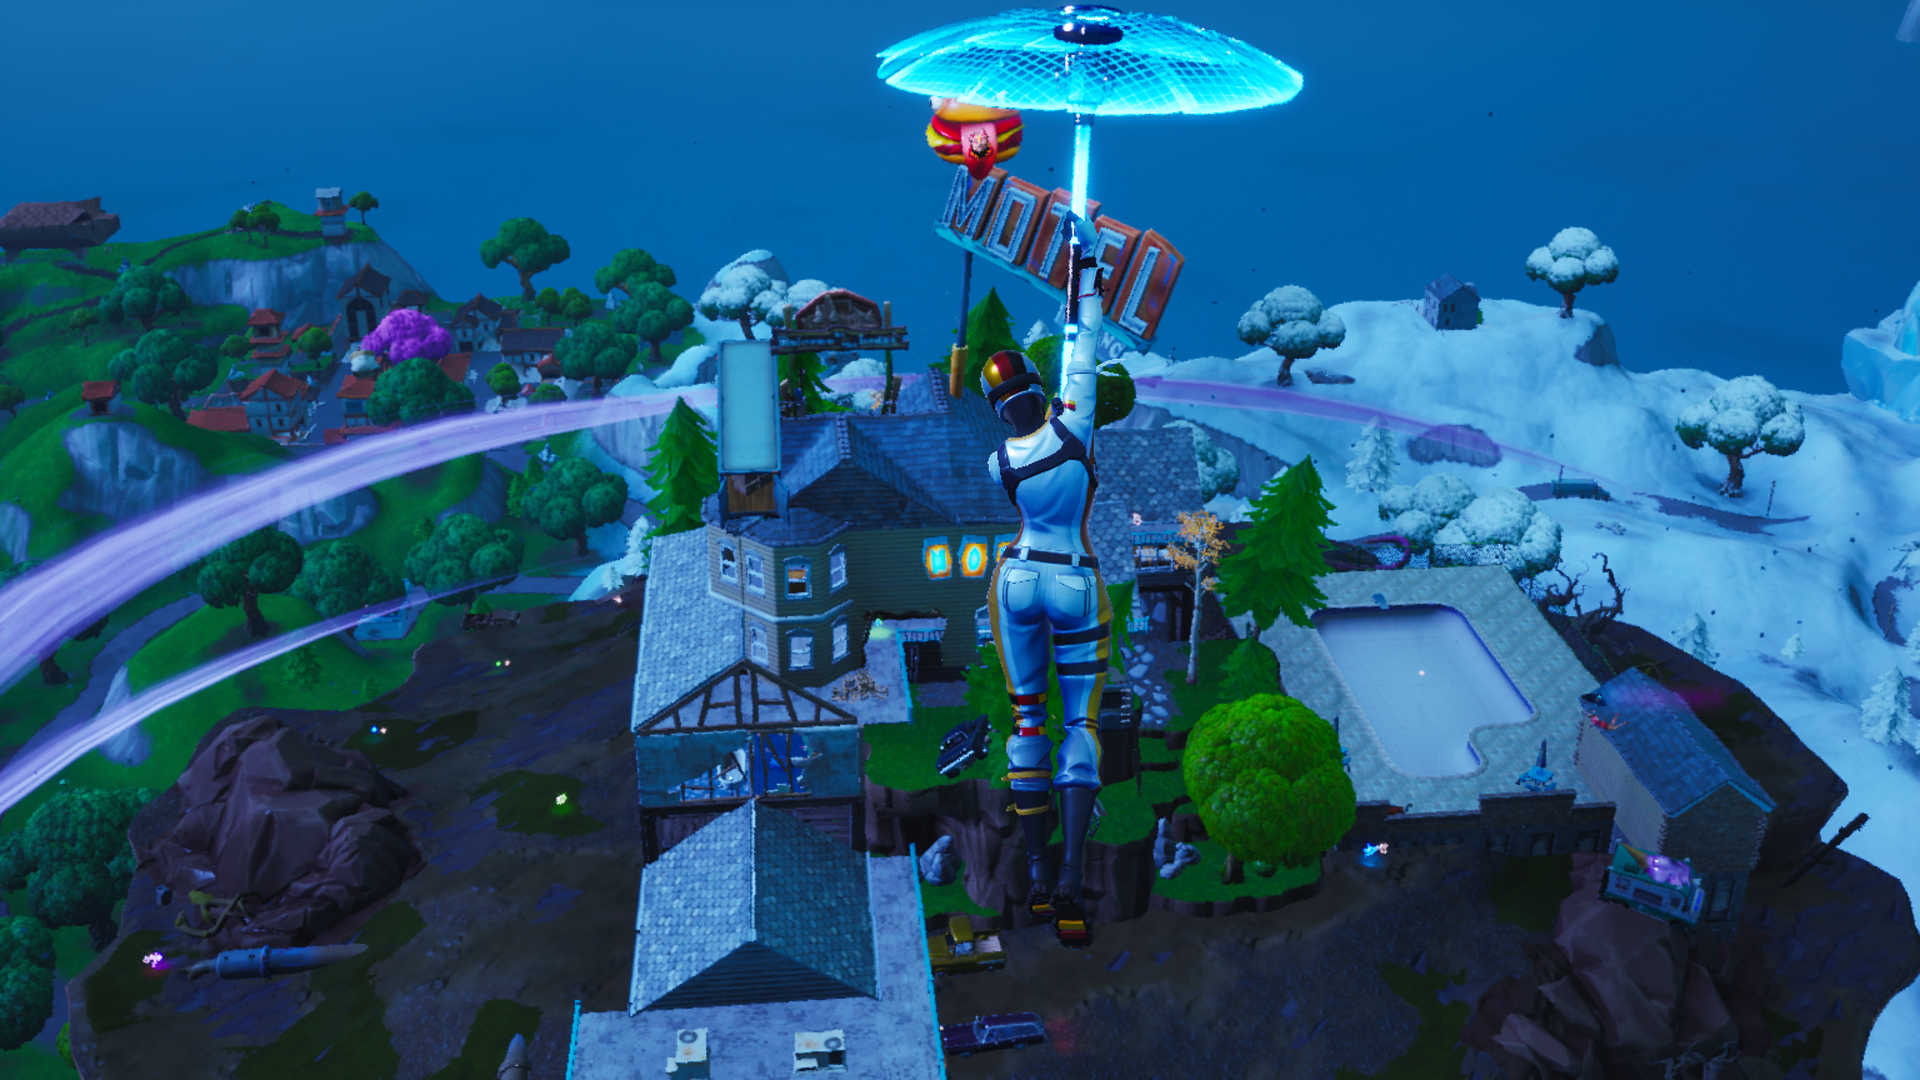 Fortnite patch v10.20 brings back season 6's floating island and the new Zapper Trap